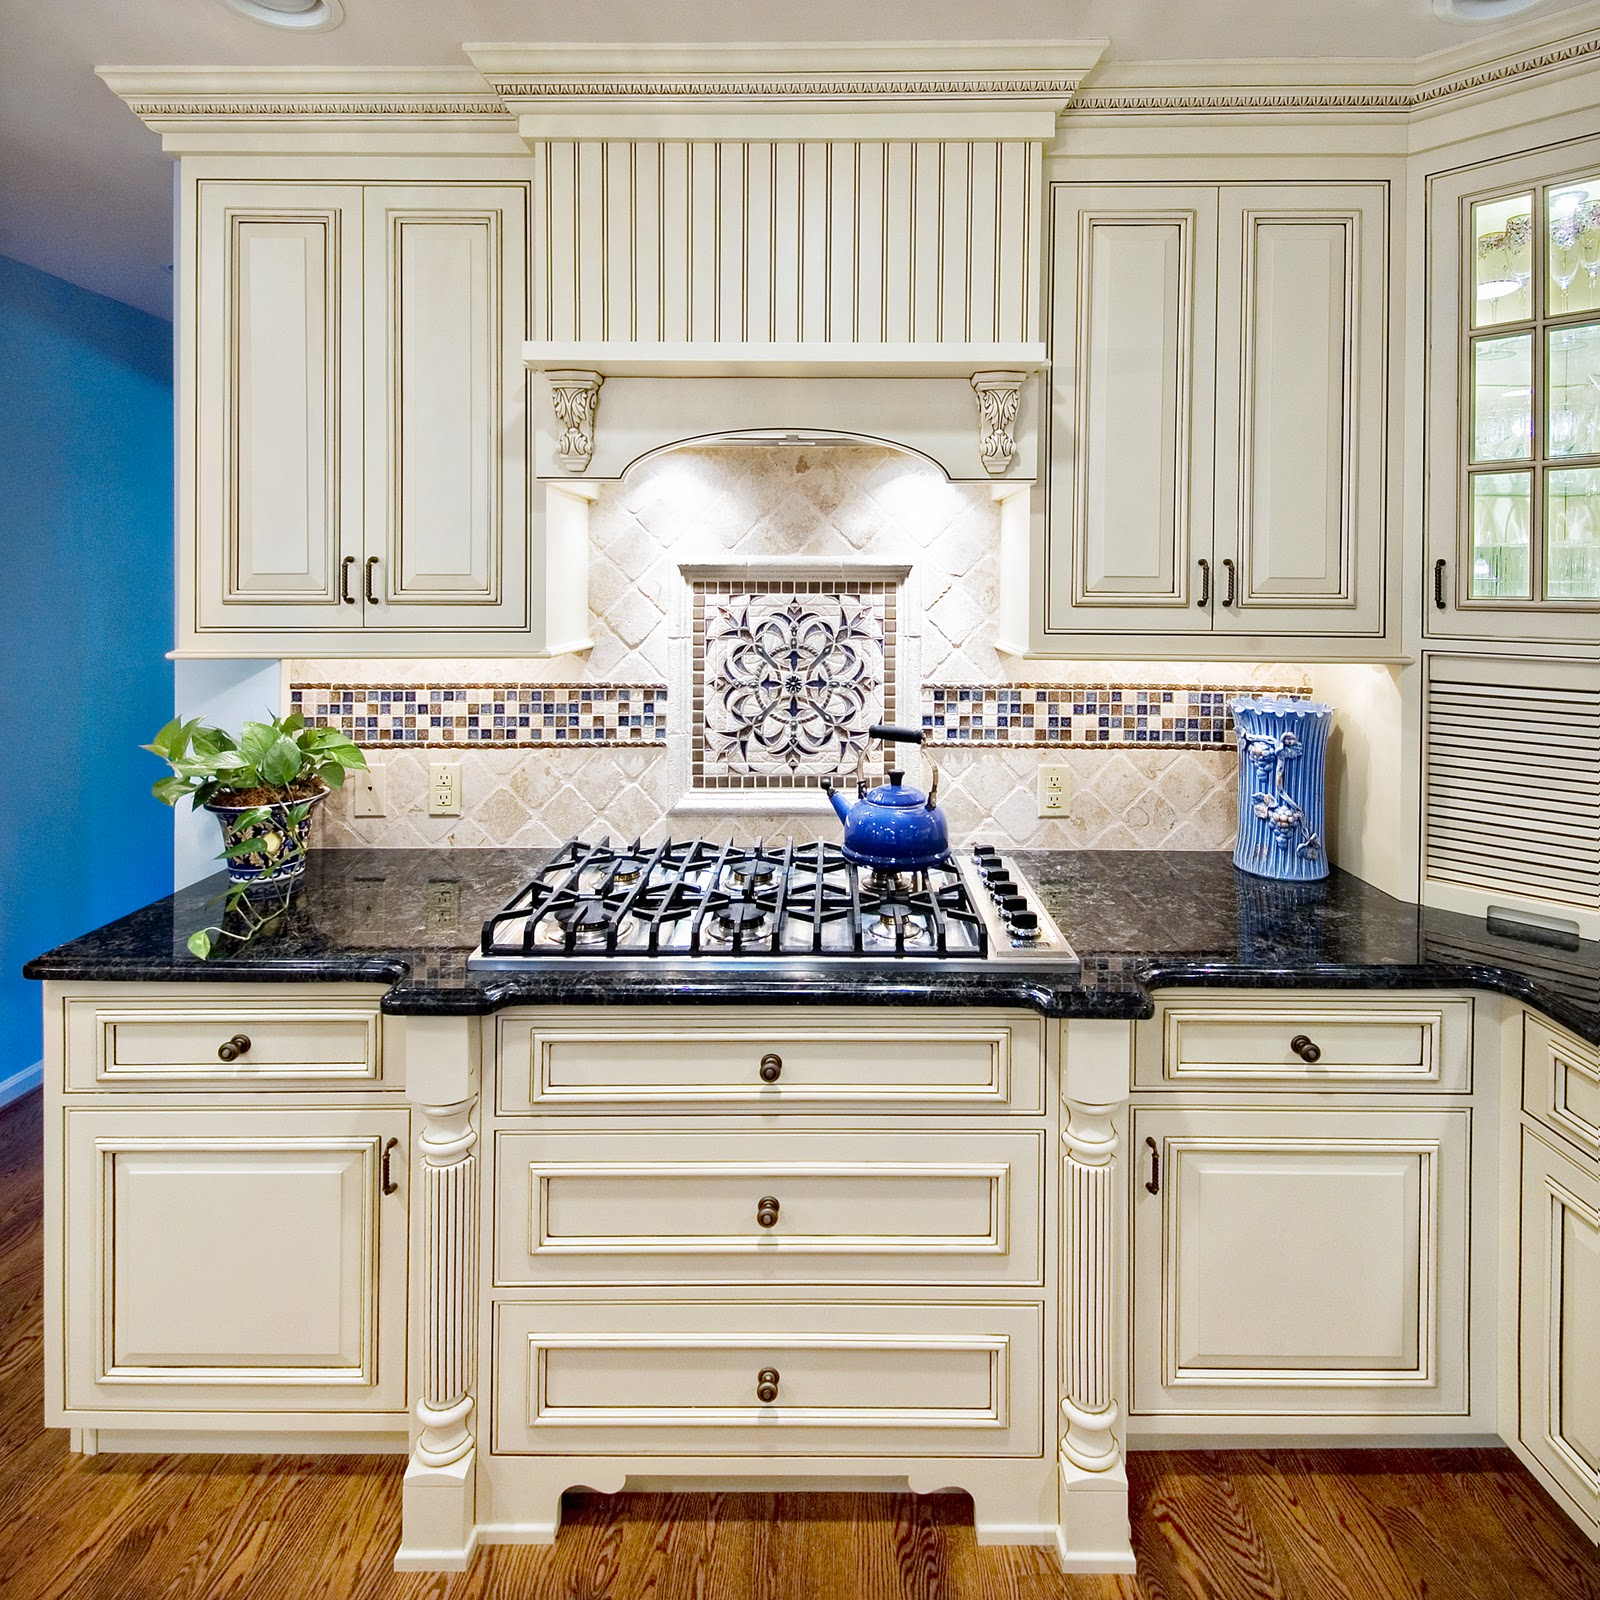 Blue Cabinets In Kitchen 1000 43 Images About Kitchen Tile On Pinterest